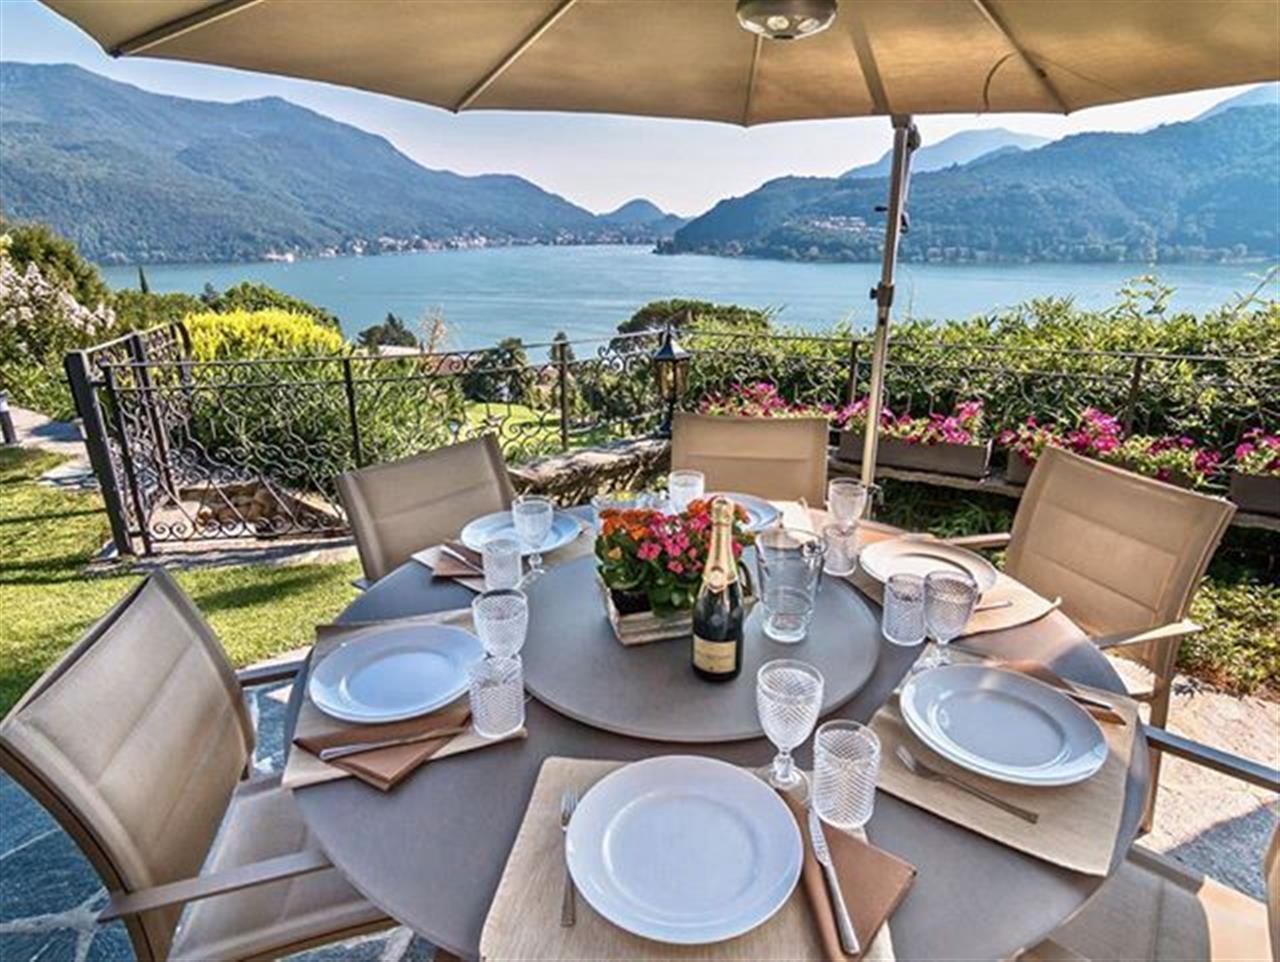 Mediterranean style #villaforsale in #Morcote #Switzerland at #Luganolake PART II, second residence possible. This Luxury Mediterranean style villa is arranged over one floor, for a current living area of 220 m┬▓ and was built in the 60s, later in 2015 restyled. Almost all the rooms opening onto the beautiful garden with palms trees, a swimming pool and a breath-taking 180┬░ panoramic lake view. This villa has the added benefit of ensuring a guaranteed unrestricted view and privacy. For more search with ref. 88519 or visit bit.ly/88519-en.  #luxuryvilla #luxuryrealestate #visitlugano #luganomycity #inlovewithswitzerland #luxurylife #luxurylifestyle #christiesinternationalrealestate #luxuryportfolio #wetagconsulting #leadingre #ChristiesHomes #LeadingRElocal